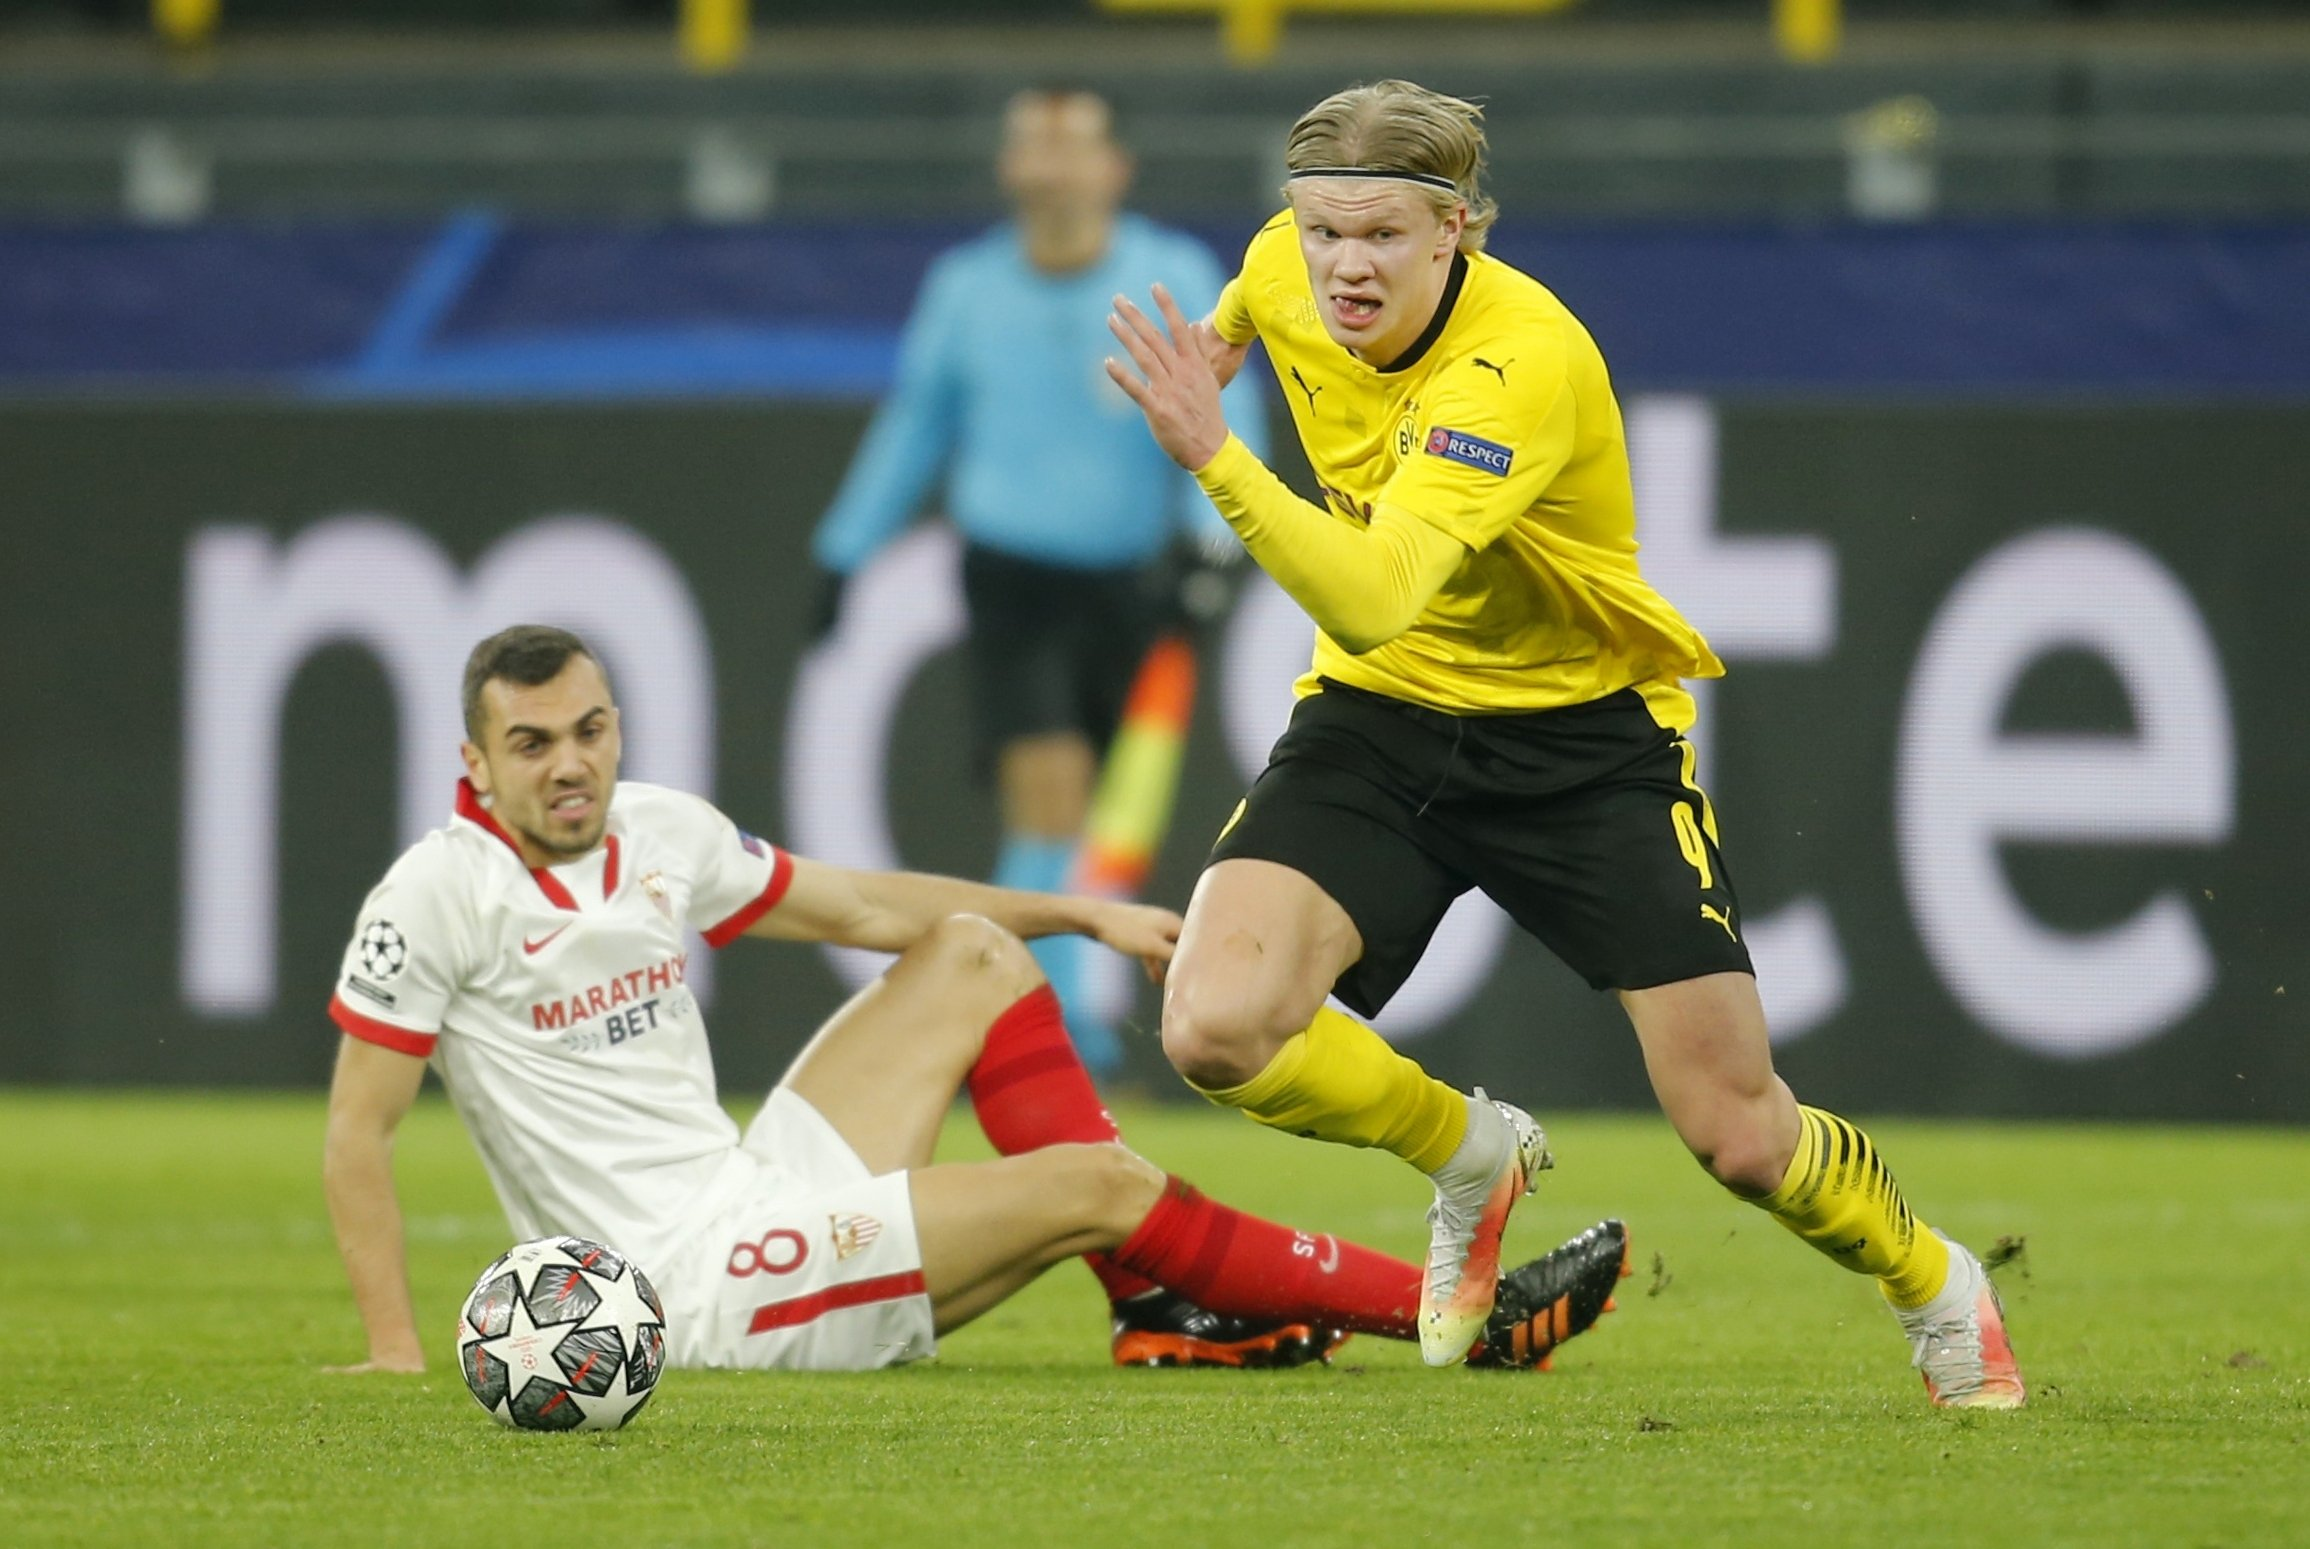 Borussia Dortmund's Erling Braut Haaland (R) goes past Sevilla's Joan Jordán during their UEFA Champions League round of 16, second leg match in Dortmund, Germany, March 9, 2021. (Reuters Photo)